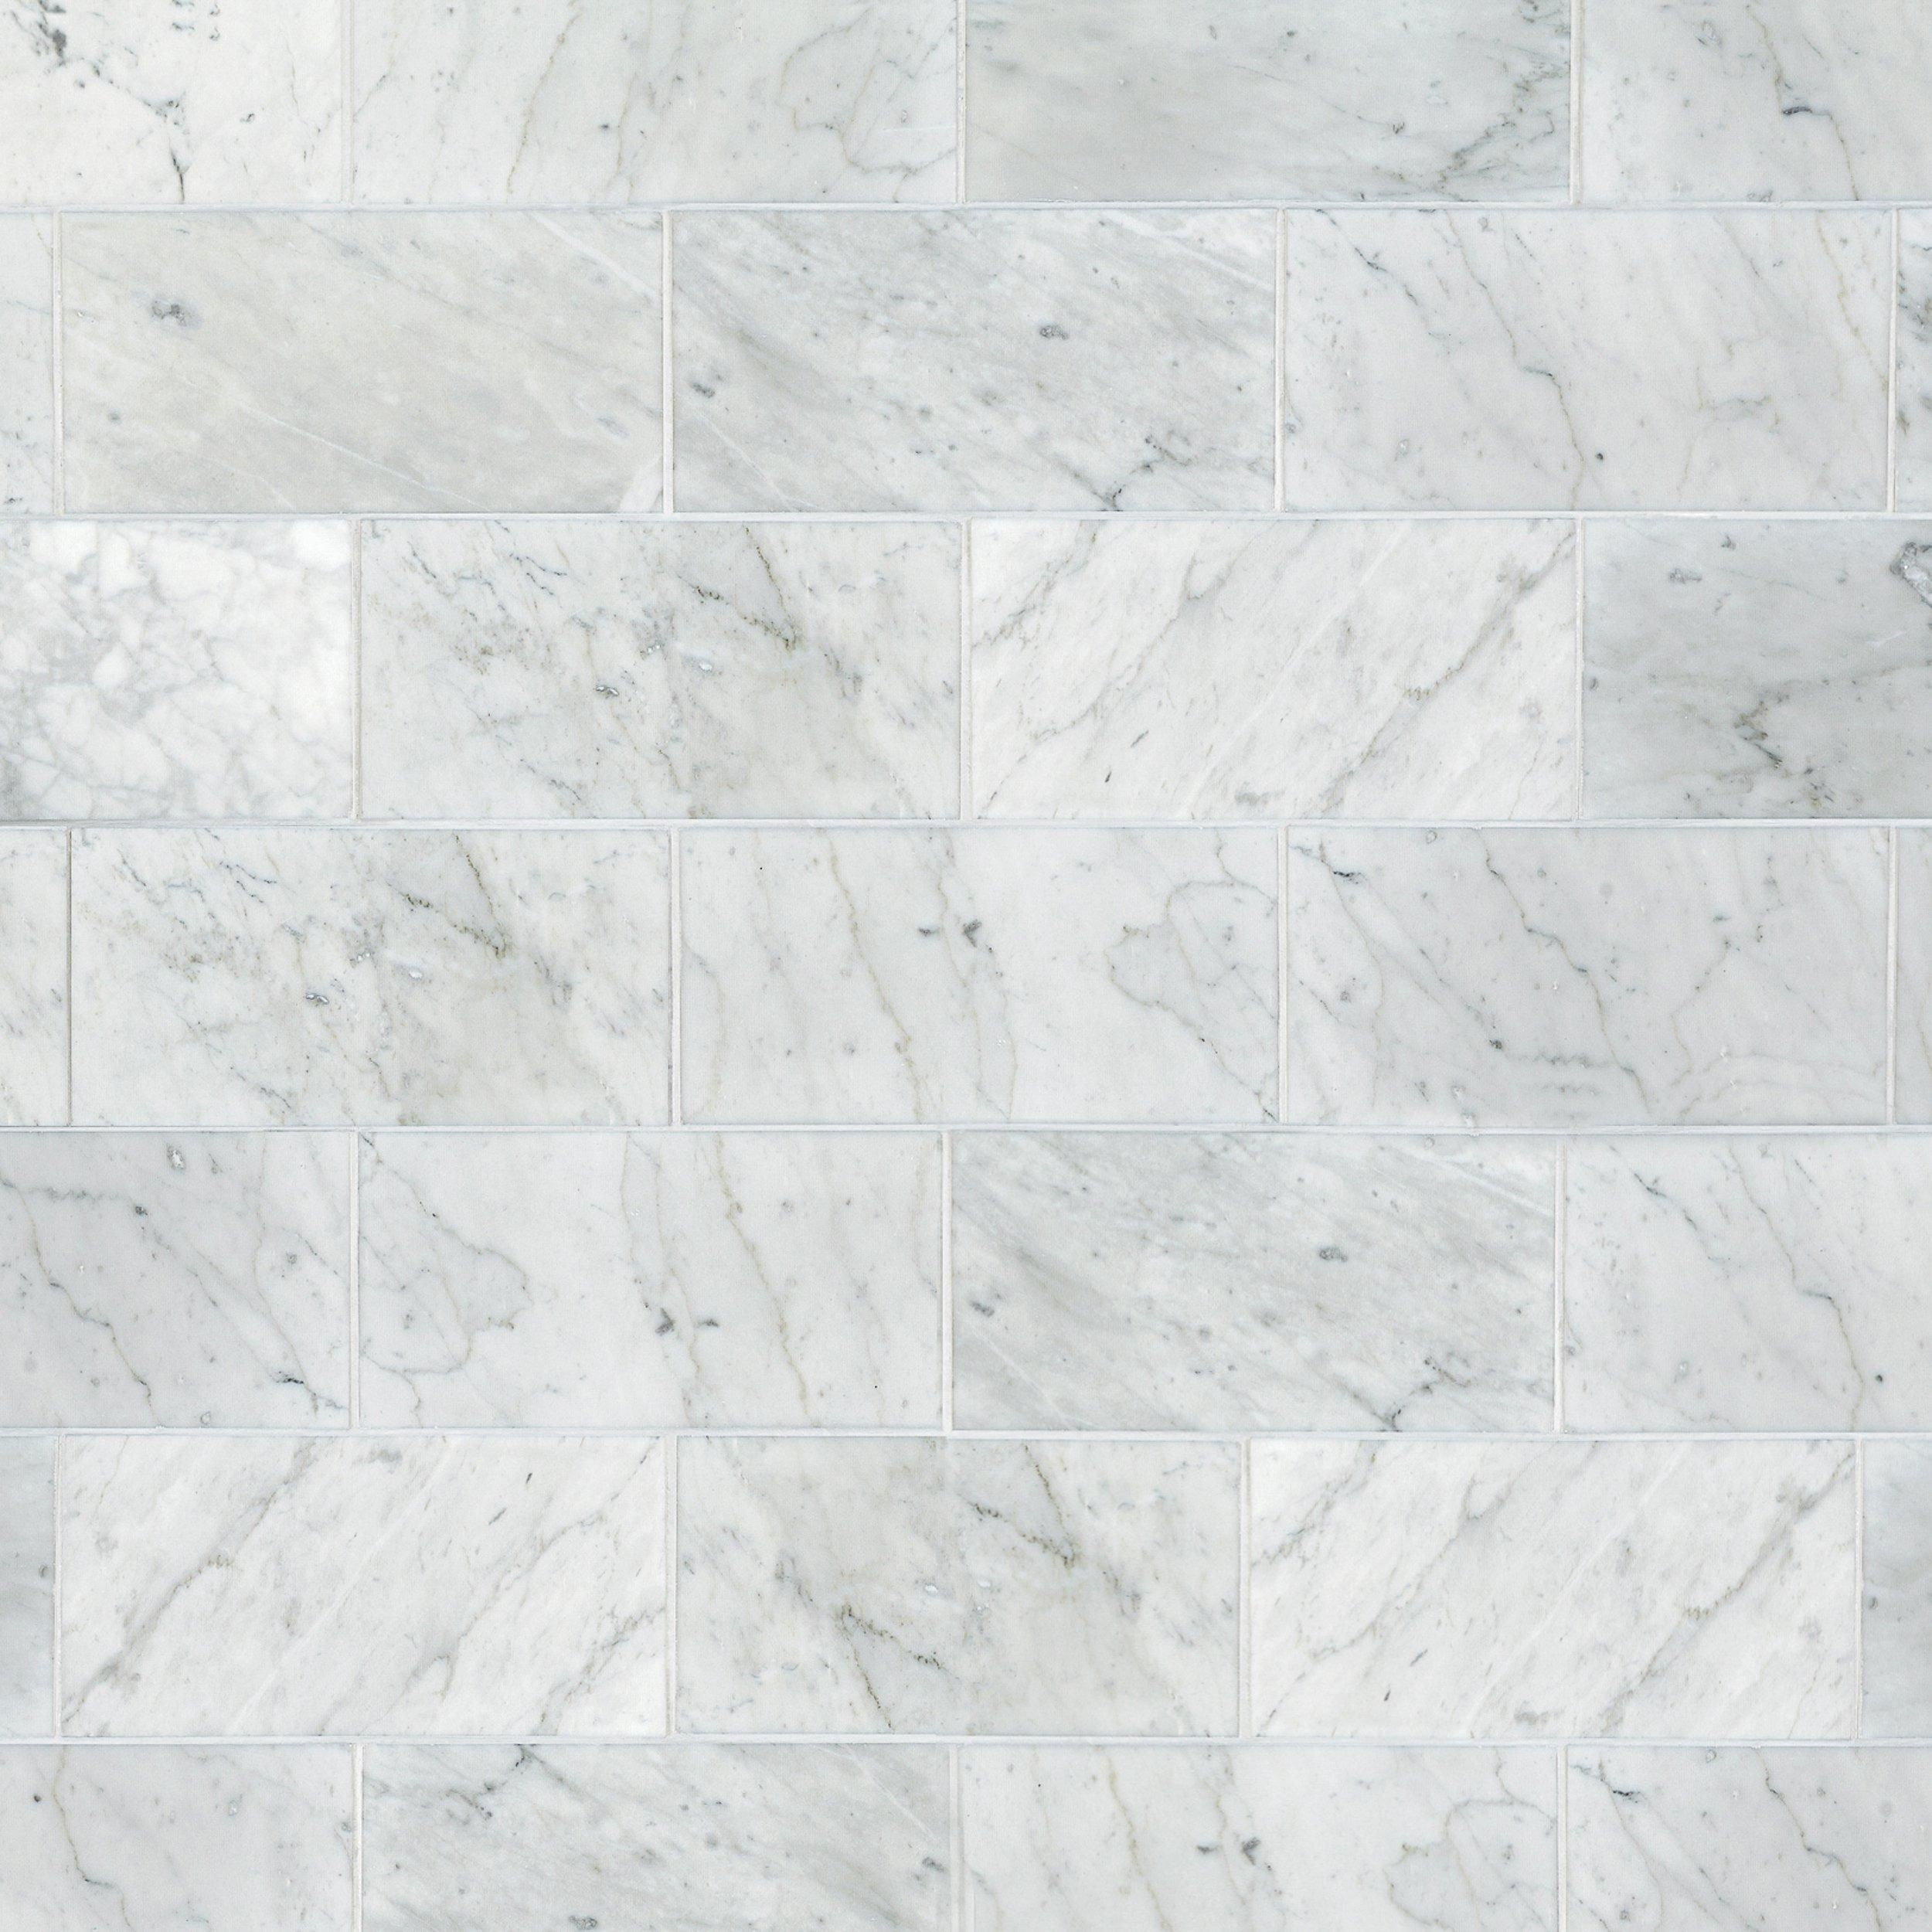 Bianco Carrara Honed Marble Tile Marble Tiles Carrara